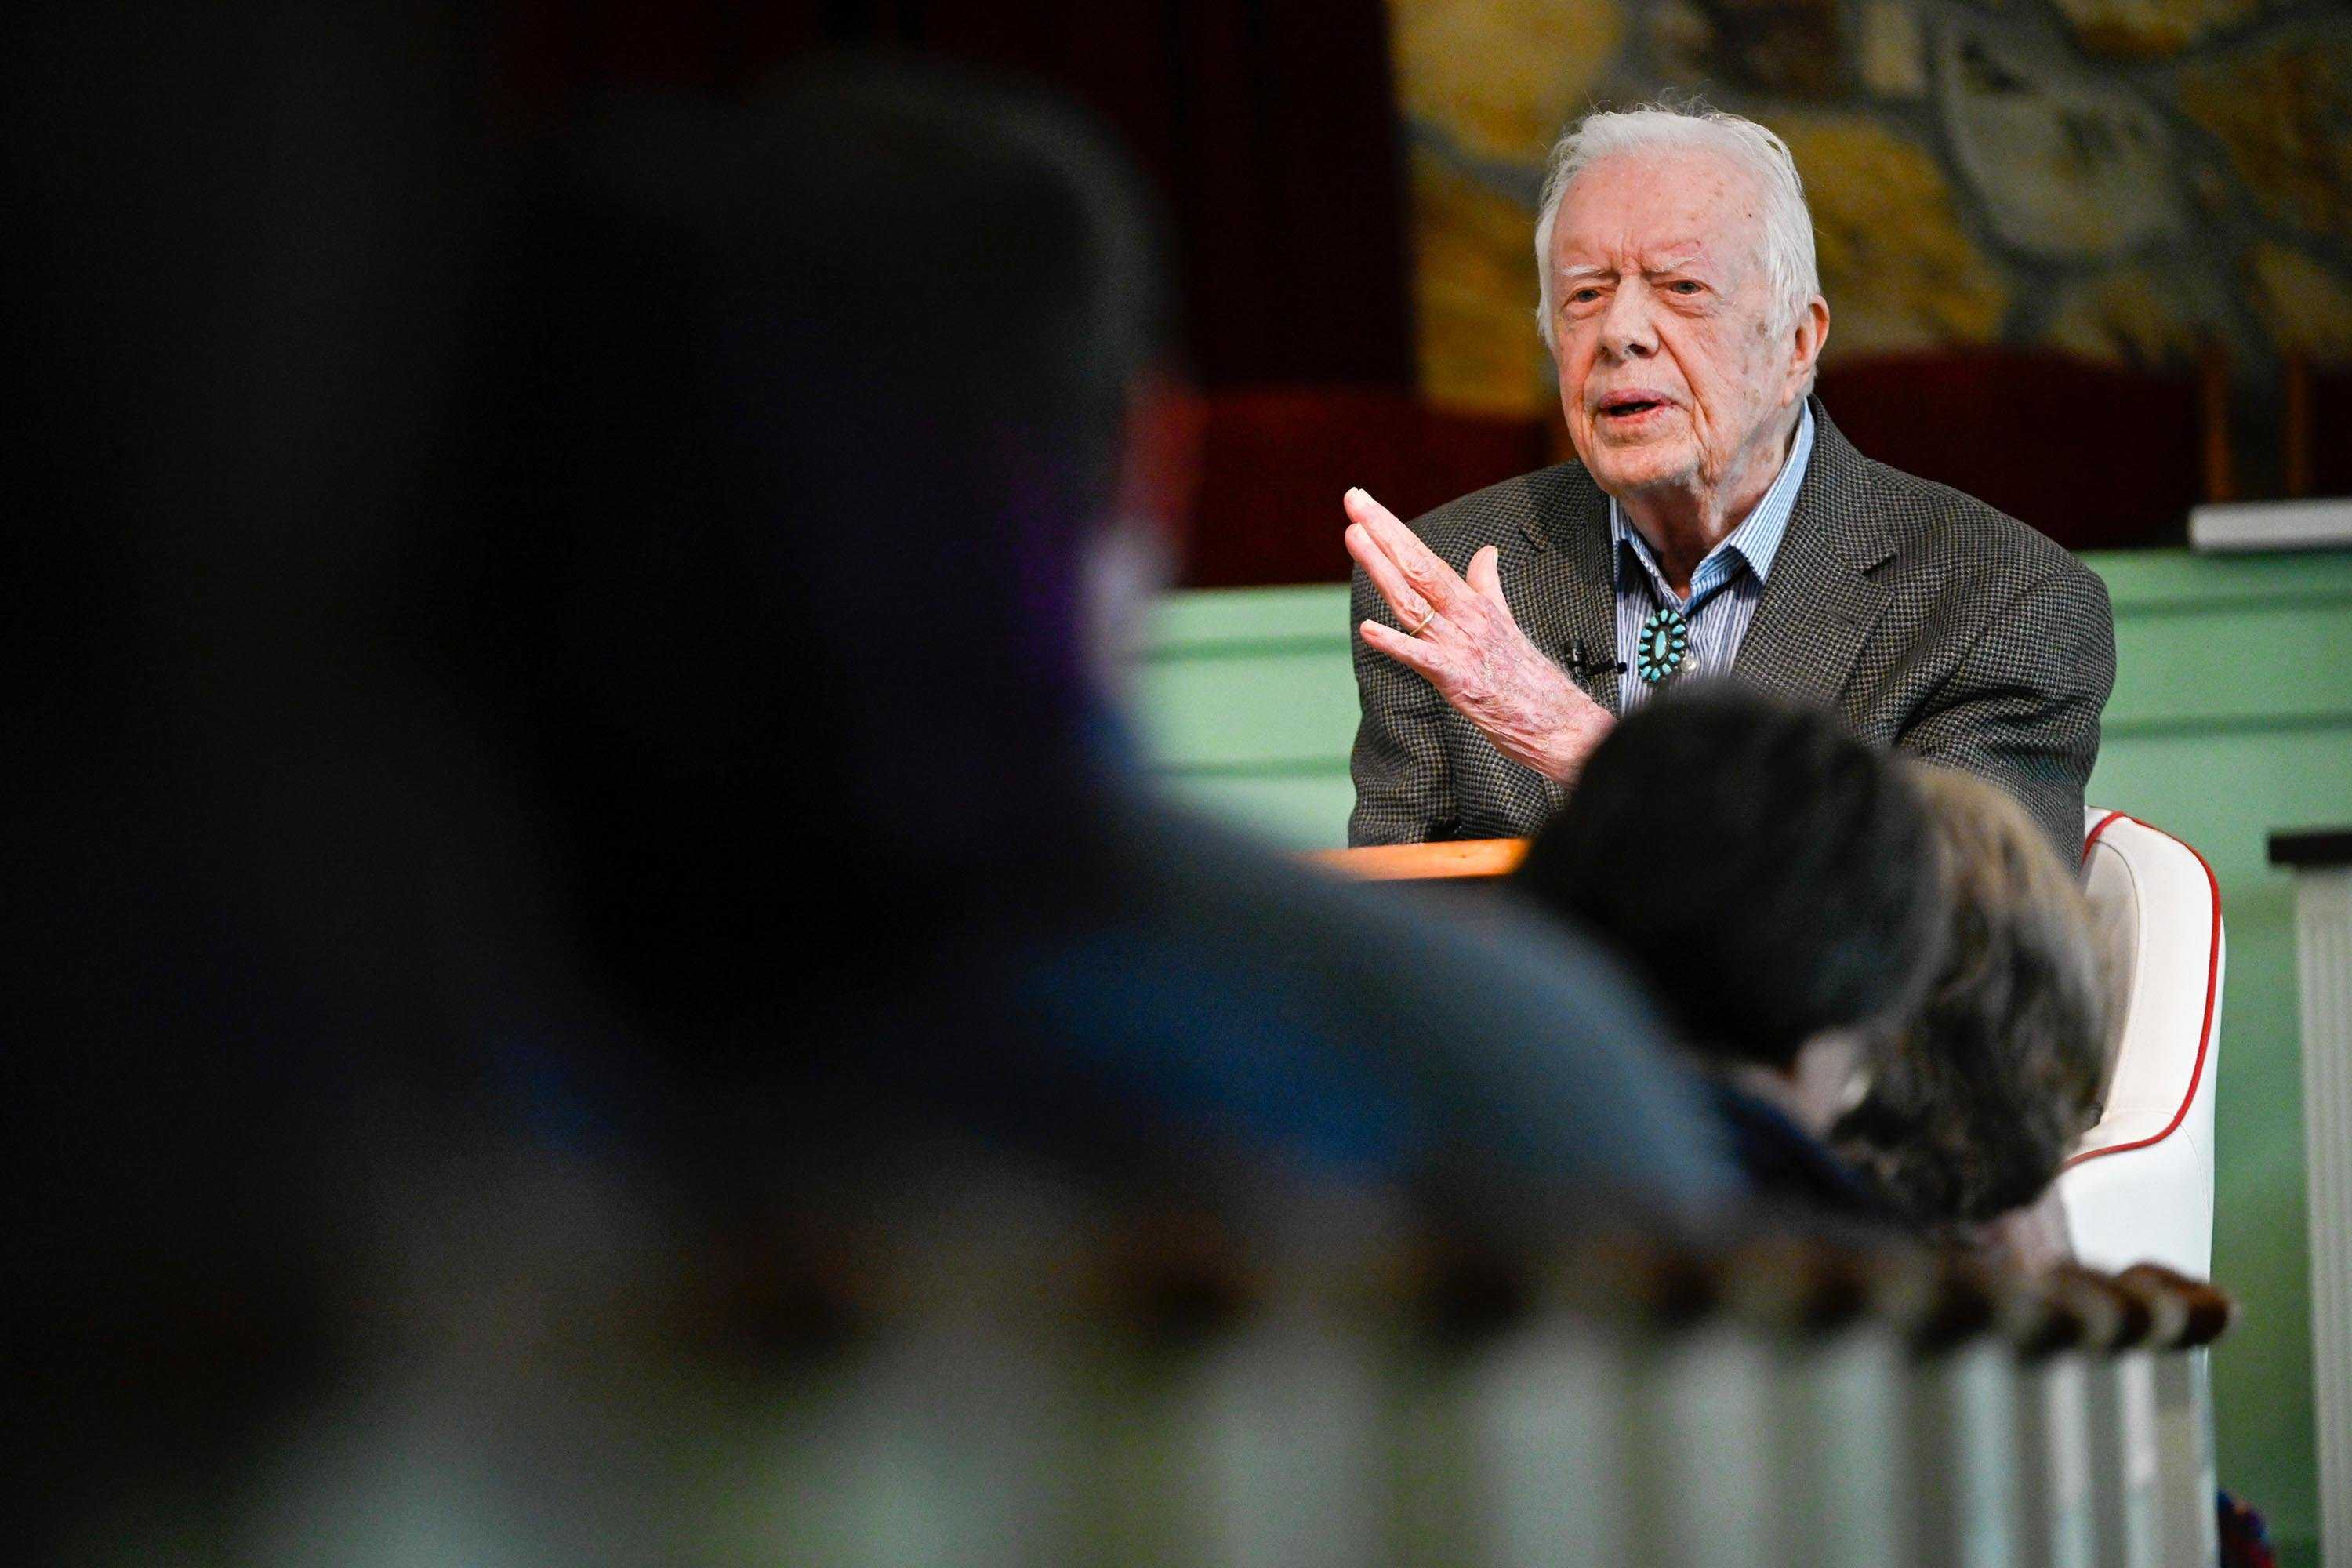 'Don't get discouraged': Former President Carter's church prays for recovery after hospitalization